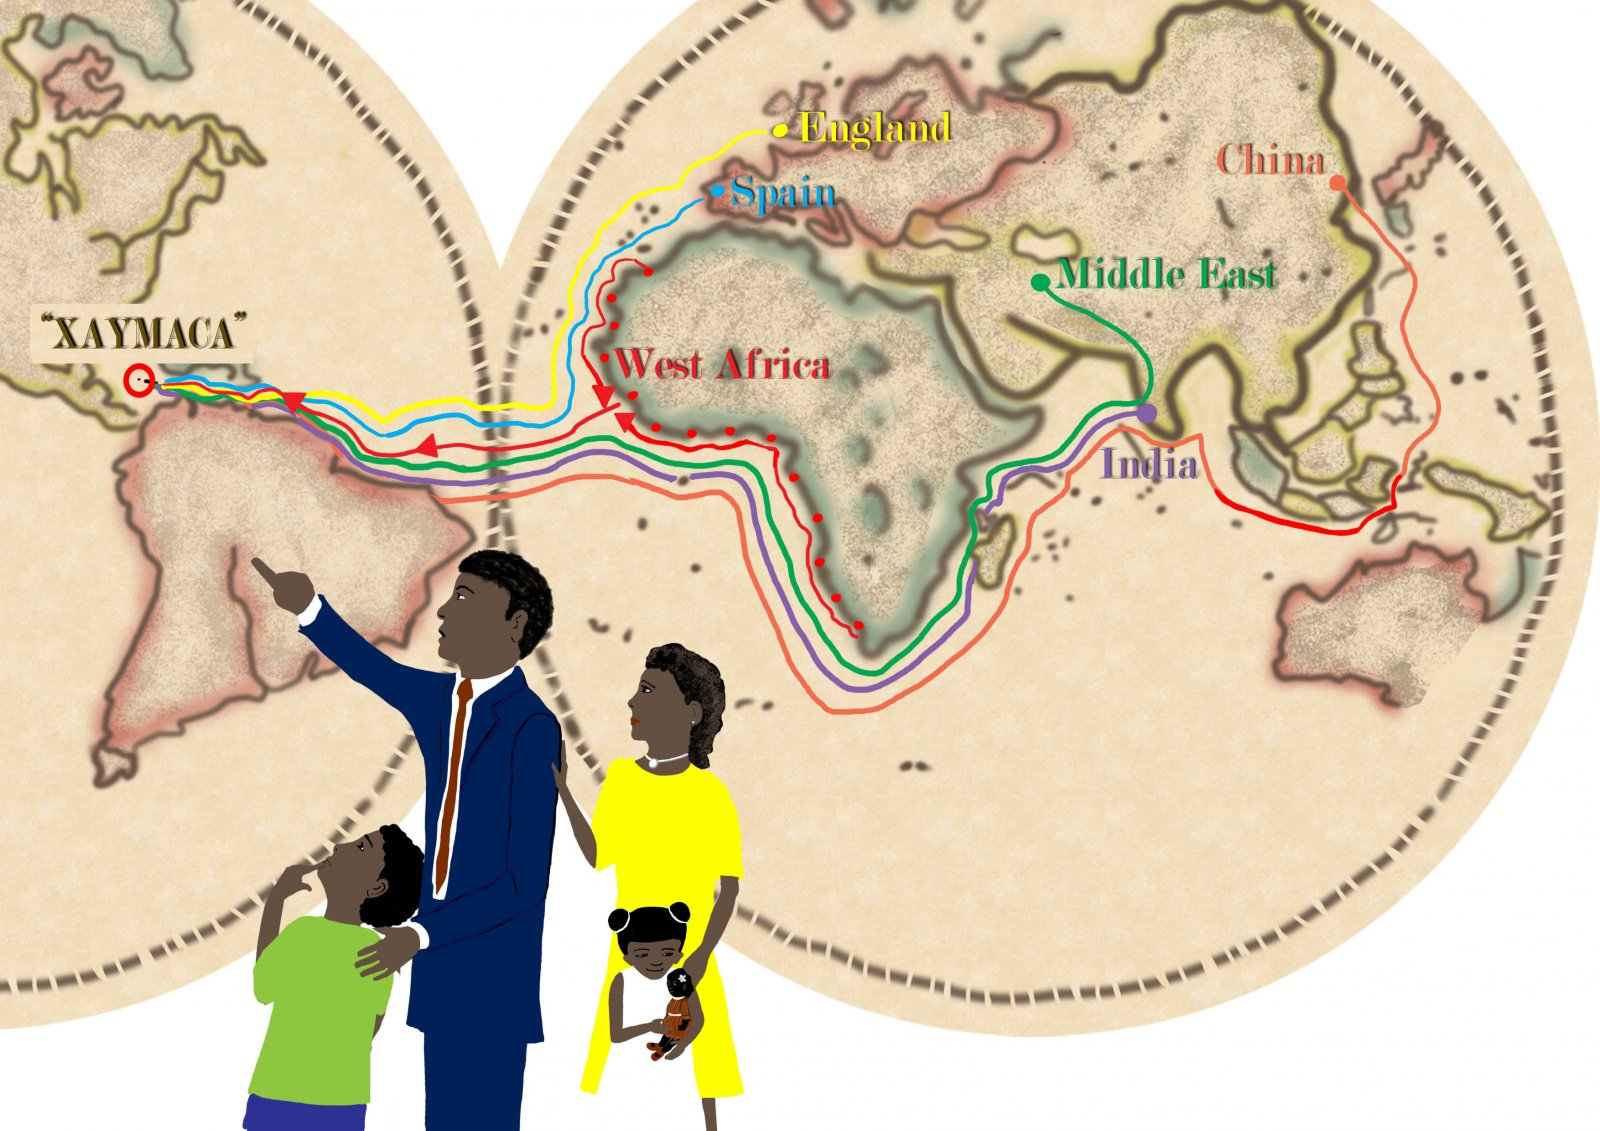 Jamaica: Late 1500s Immigration and Slaves